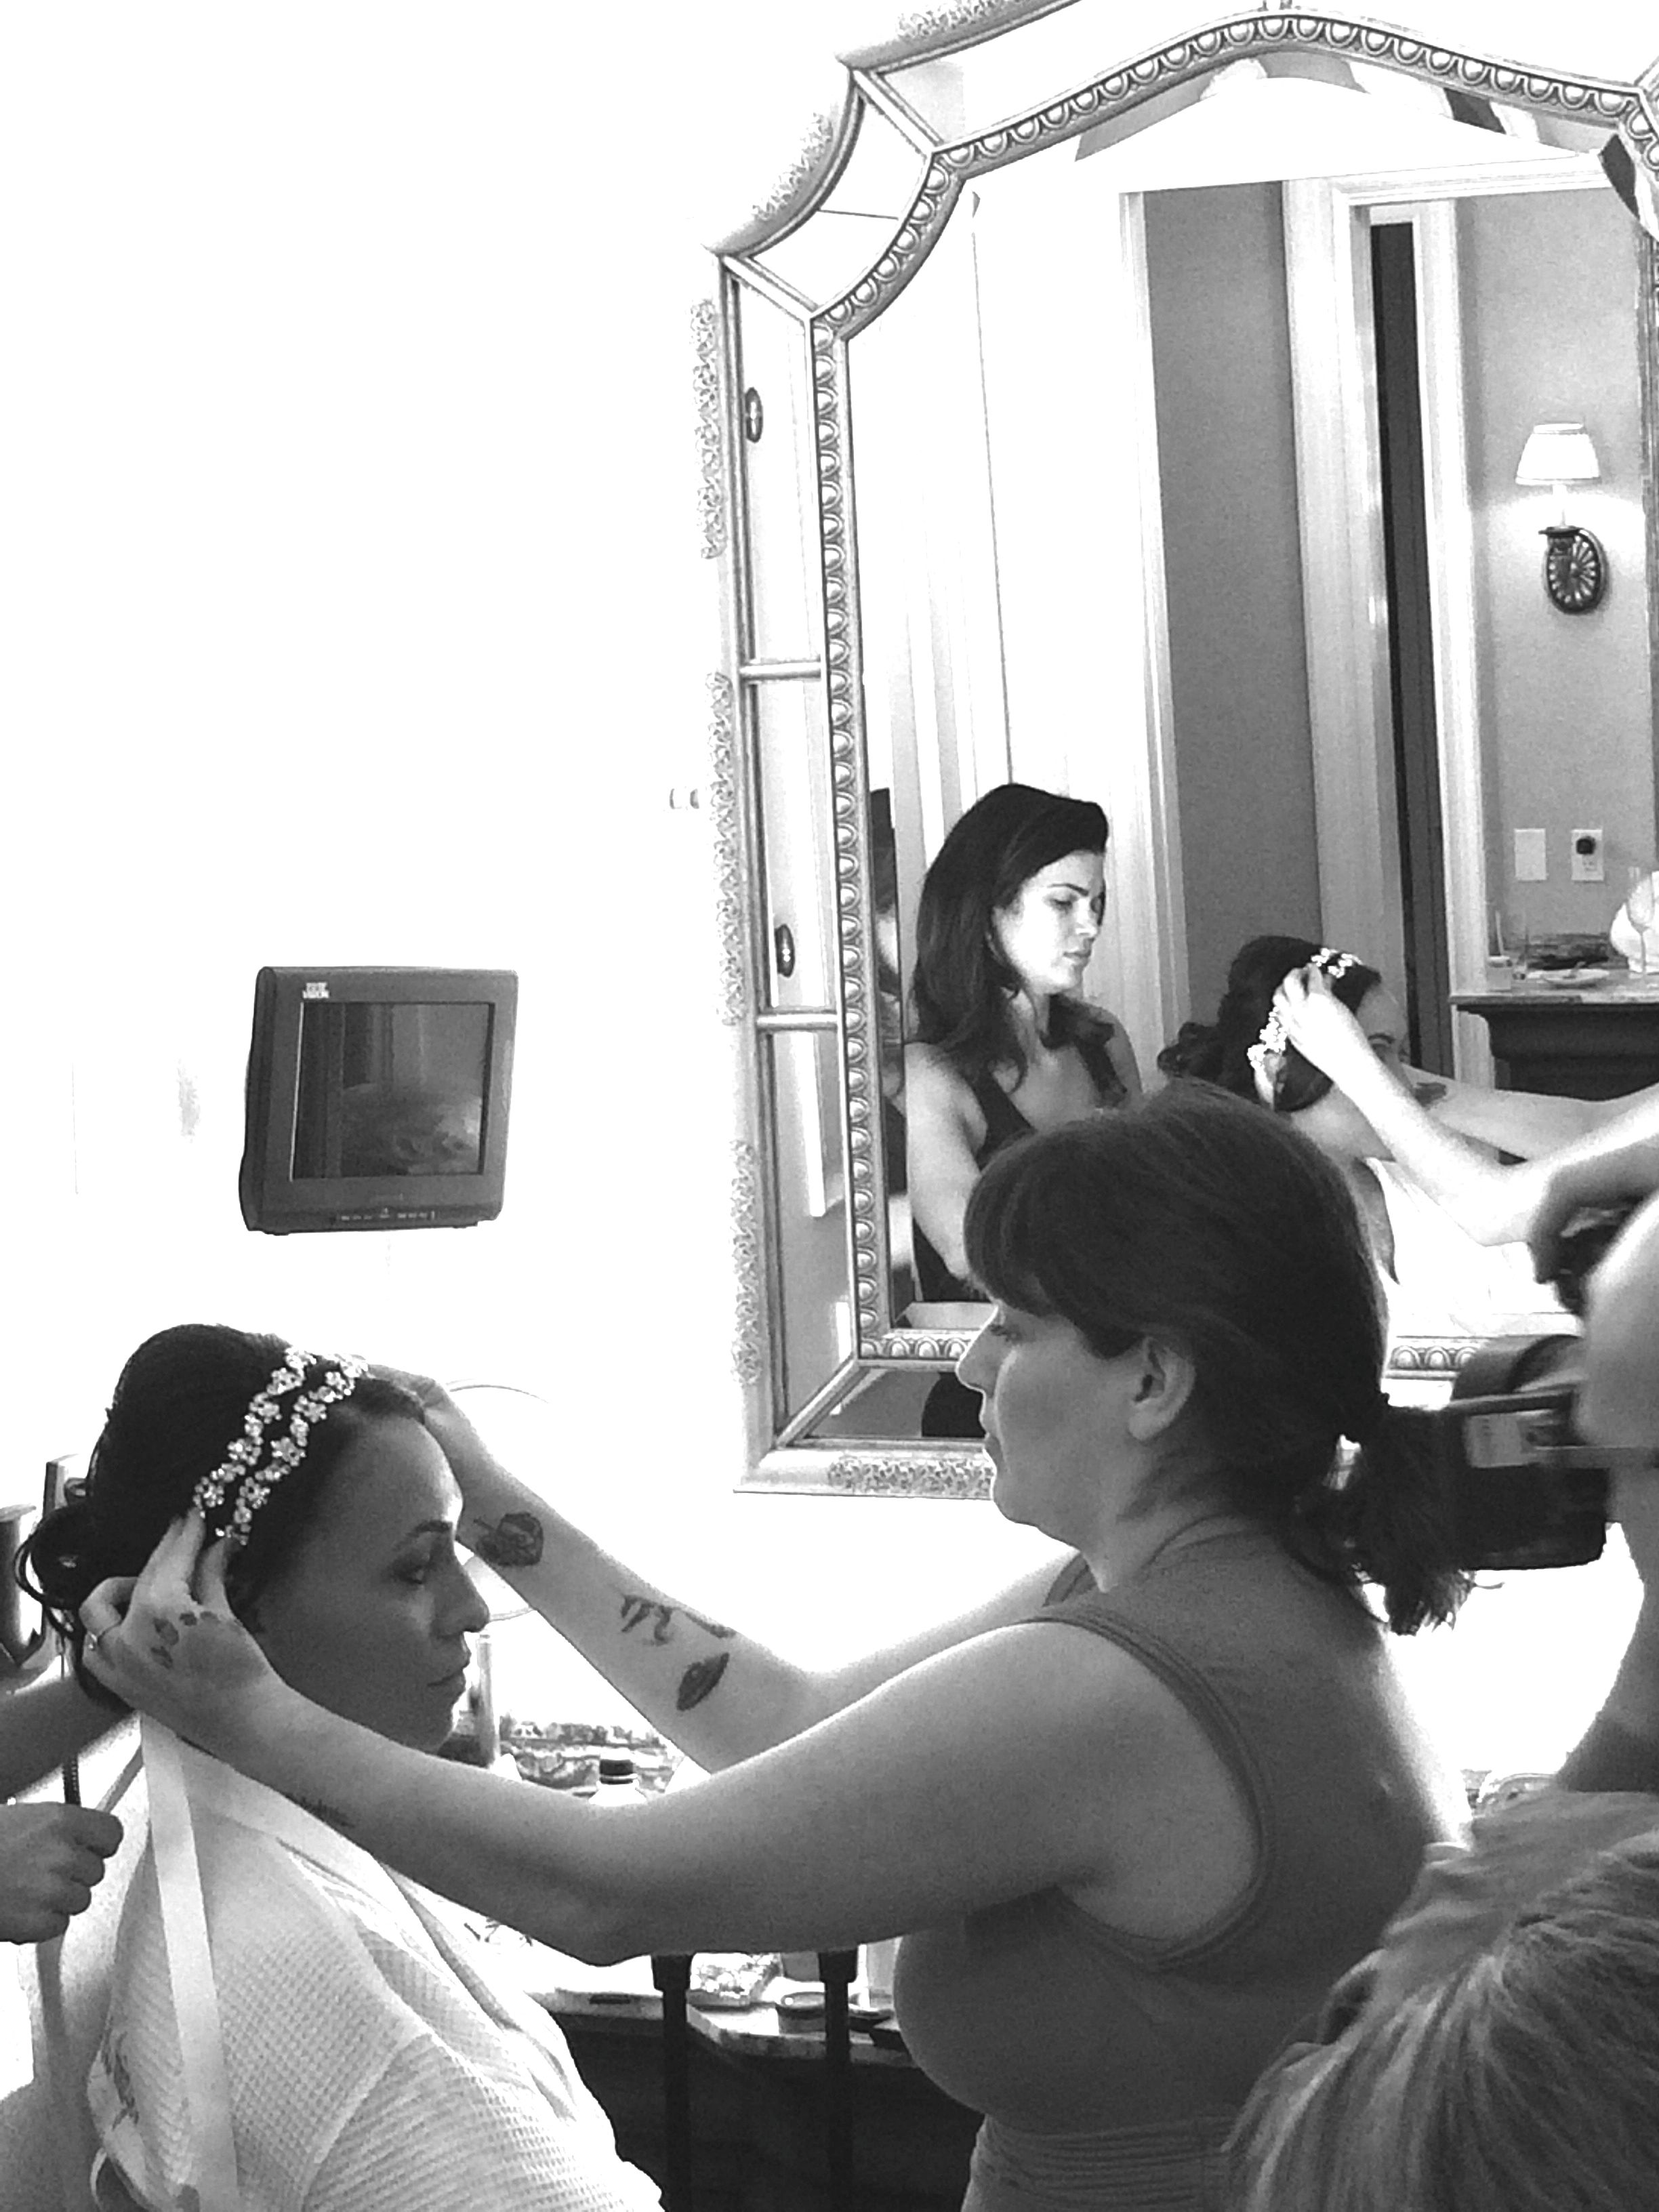 Your Beauty Call  owners Janine Cali and LaVey Kindred set bride Megan's custom hair jewelry before her maid of honor helped set her  Pnina Torna i Veil.   Las Vegas Wedding Planner:  Andrea Eppolito Events  | Las Vegas Wedding Venue:   Caesars Palace  | Floral and Decor:   Naakiti Floral & Sit On This  | Behind the Scenes Photos:   Andrea Eppolito